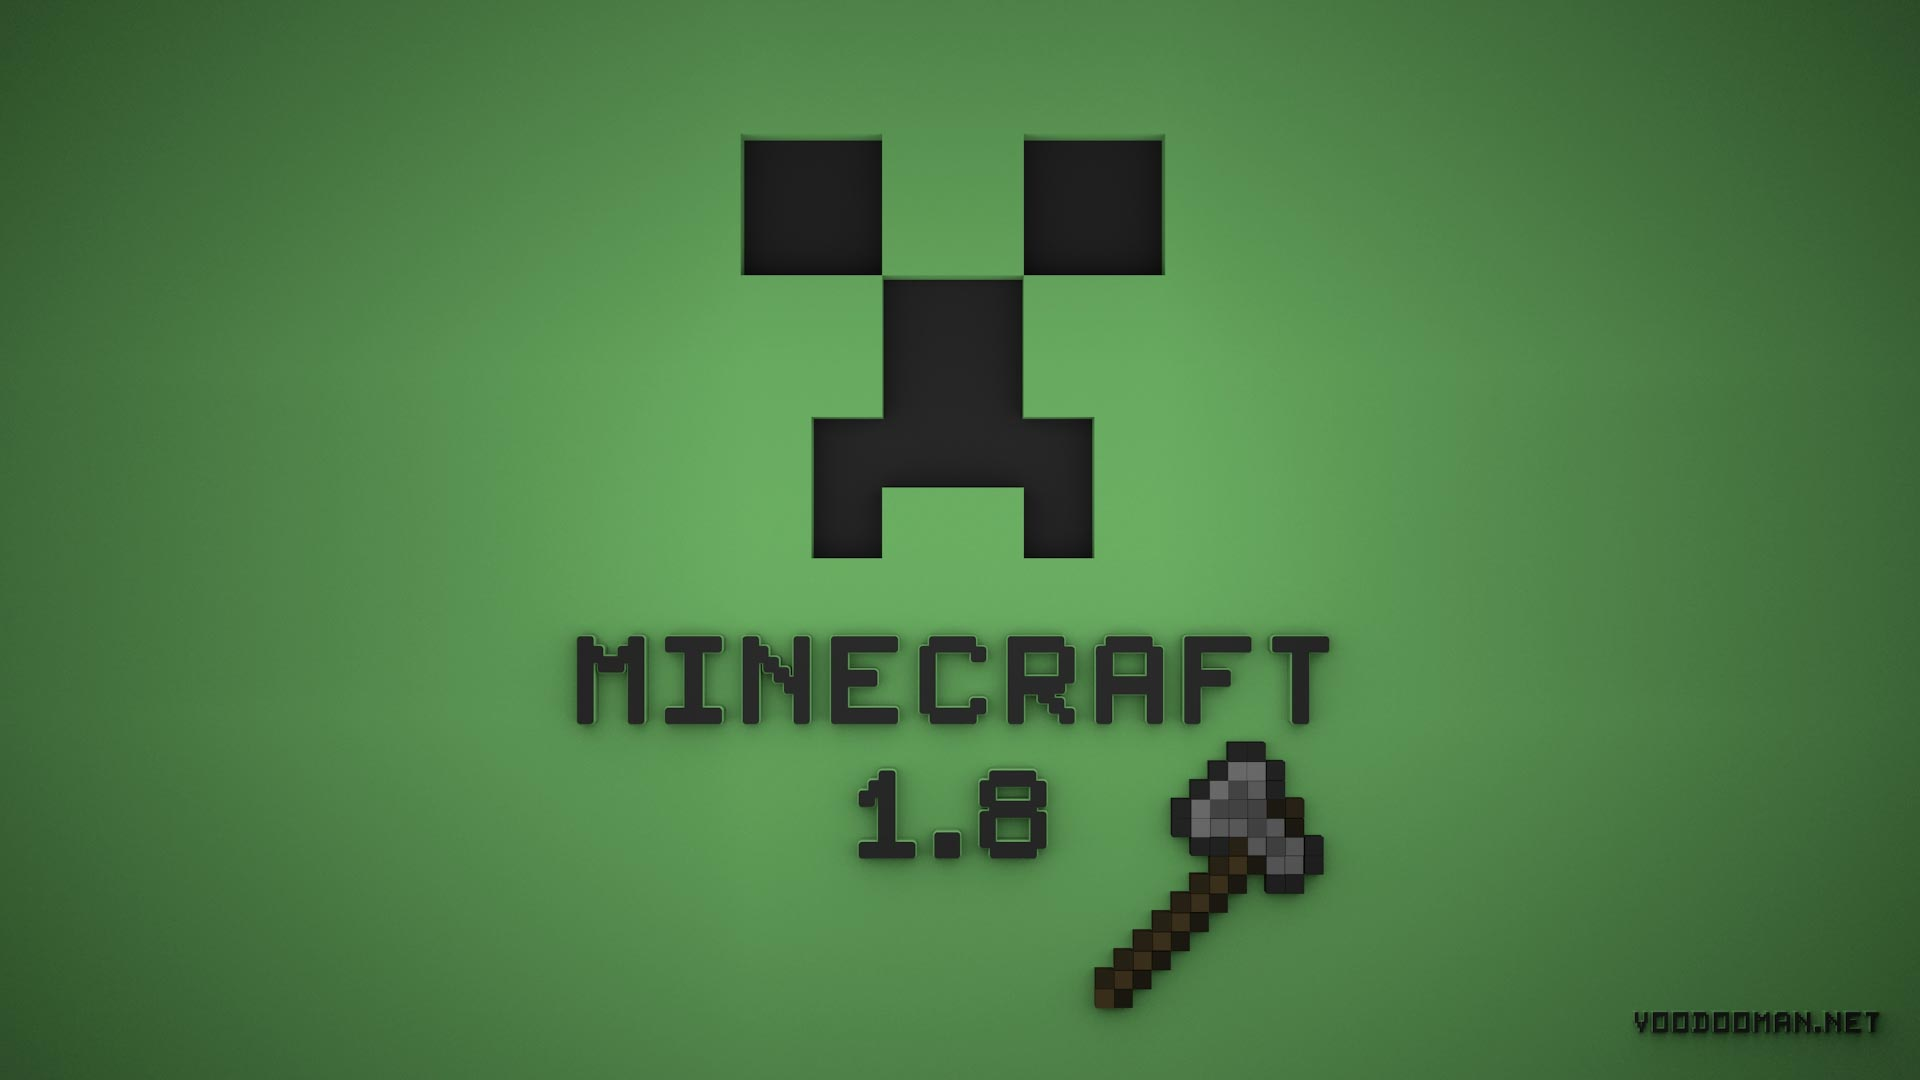 Free Download Minecraft Logo Maker Apps Directories 1920x1080 For Your Desktop Mobile Tablet Explore 40 Minecraft Wallpaper Maker Online Minecraft Wallpaper Make Your Own Minecraft Wallpaper Cool Wallpapers Minecraft